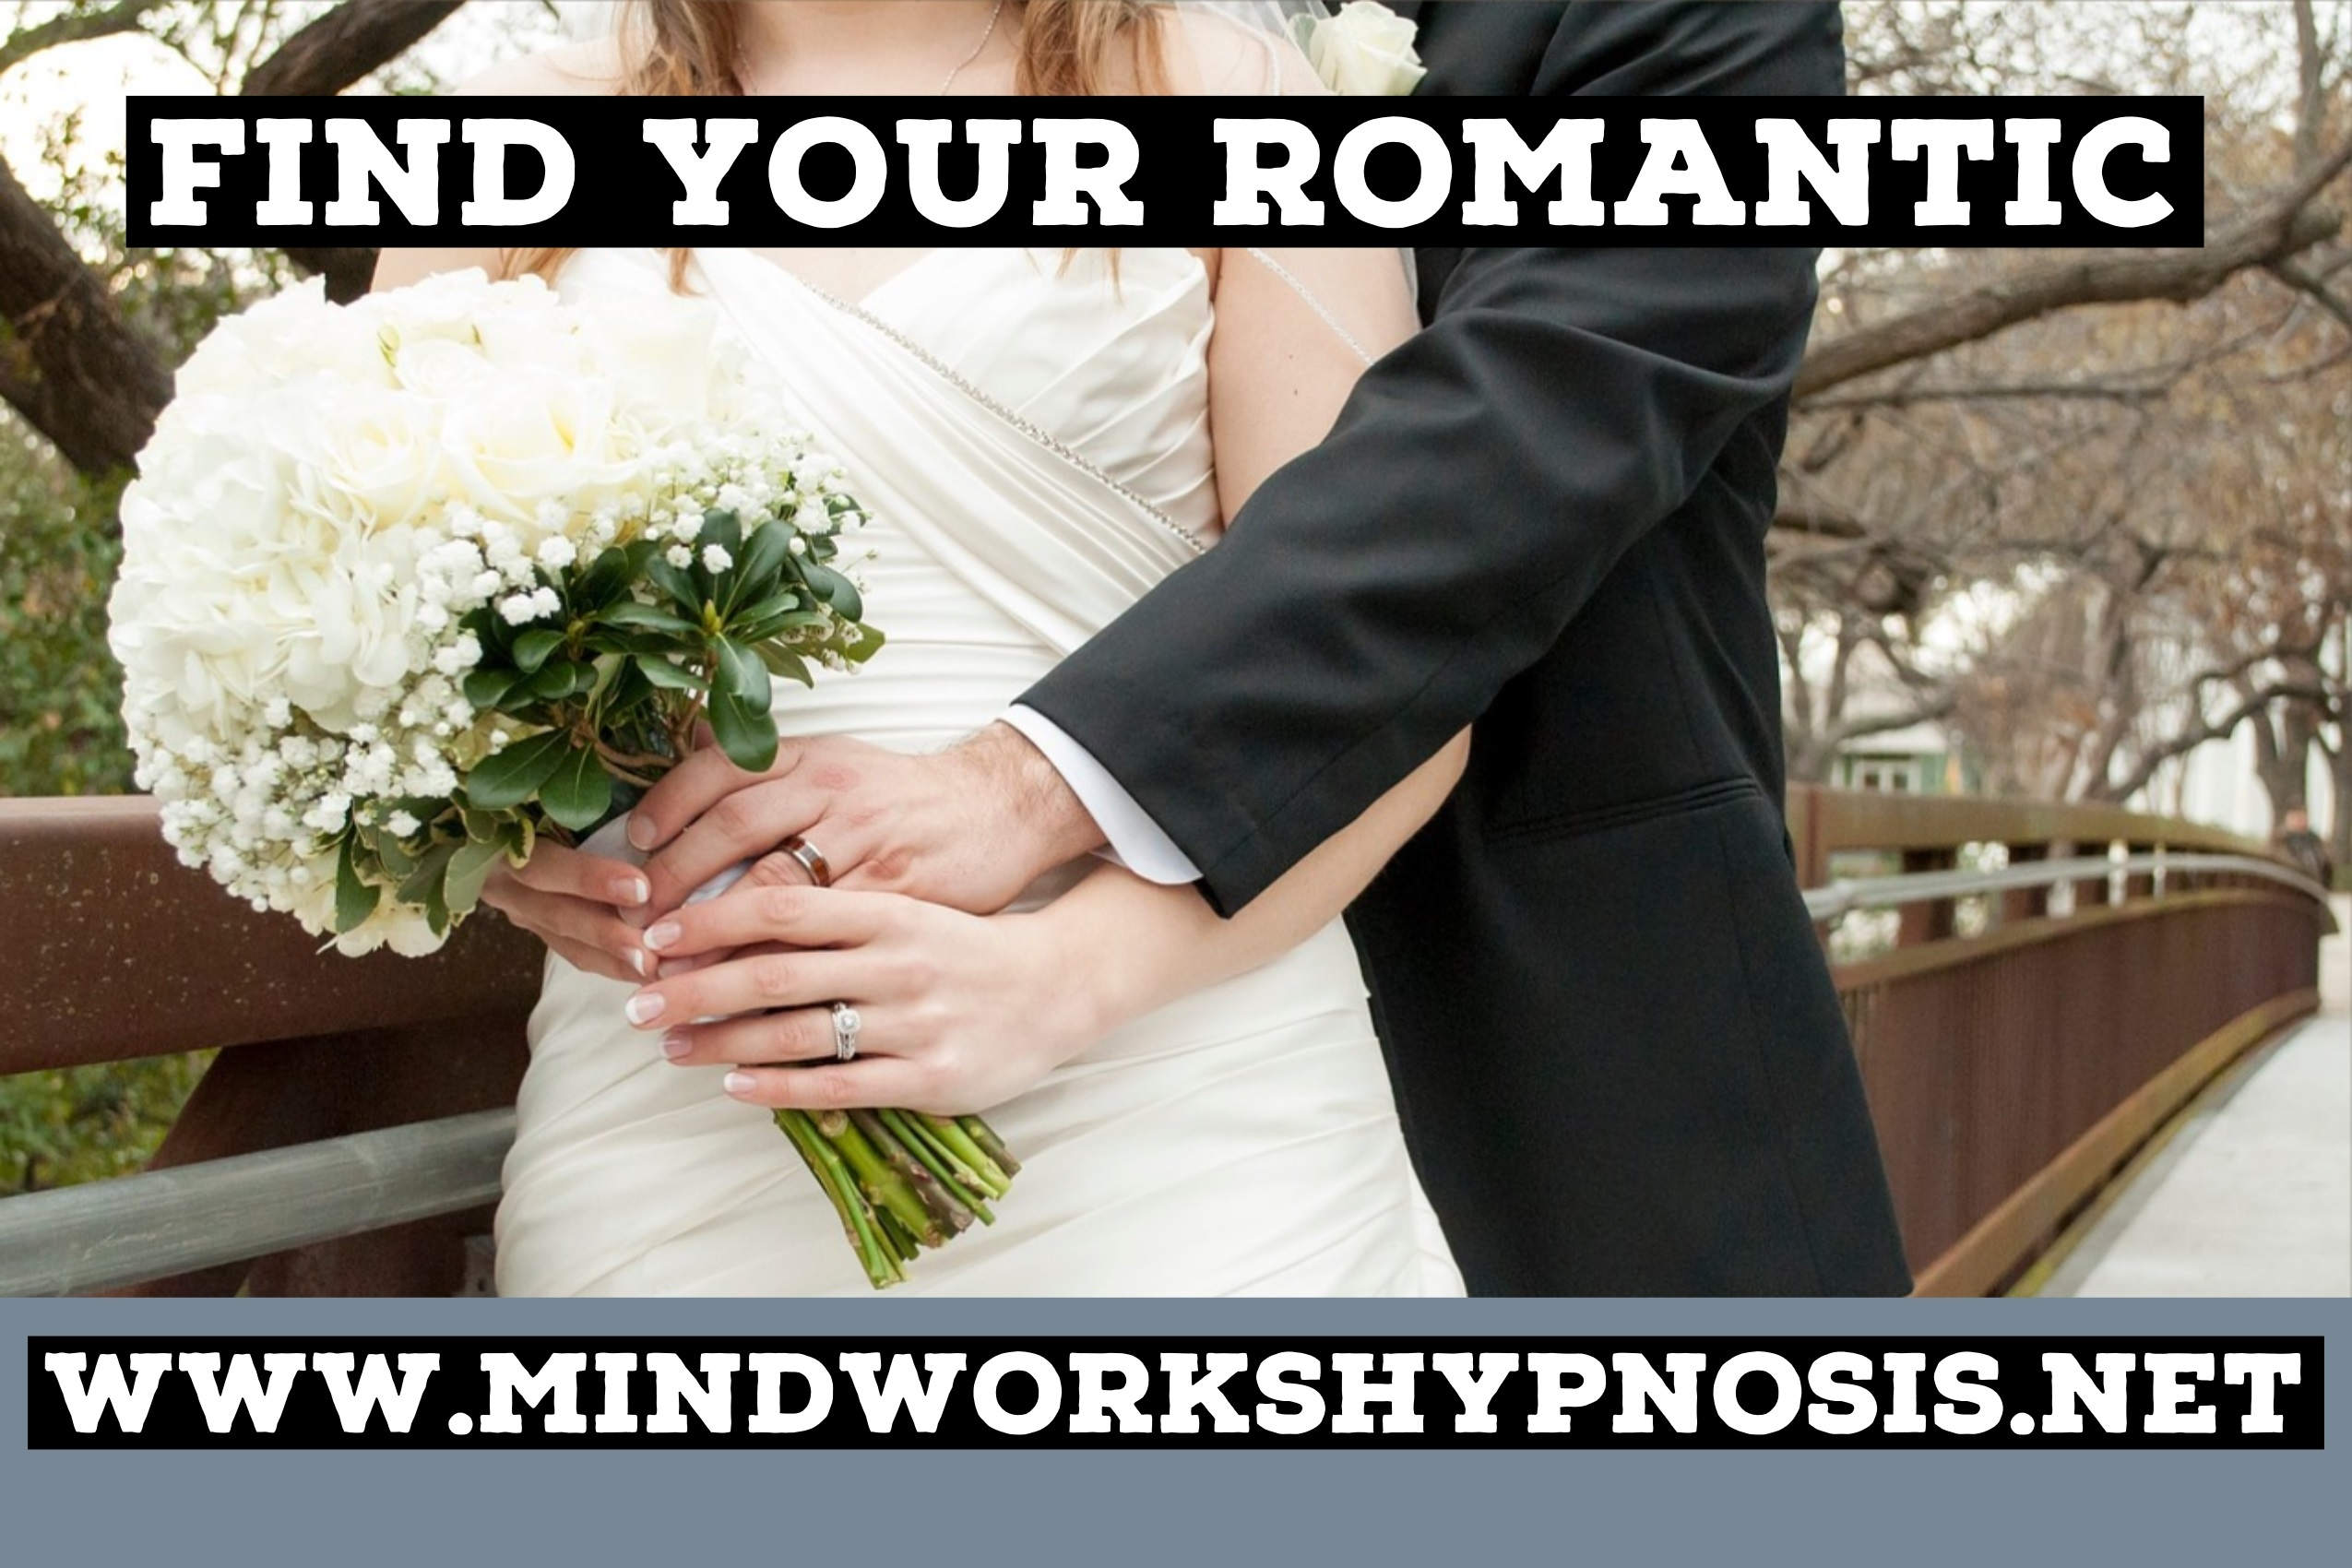 Find Your Romance and Intimacy Improvements with Mindworks Hypnosis & NLP - the good relationship specialists.